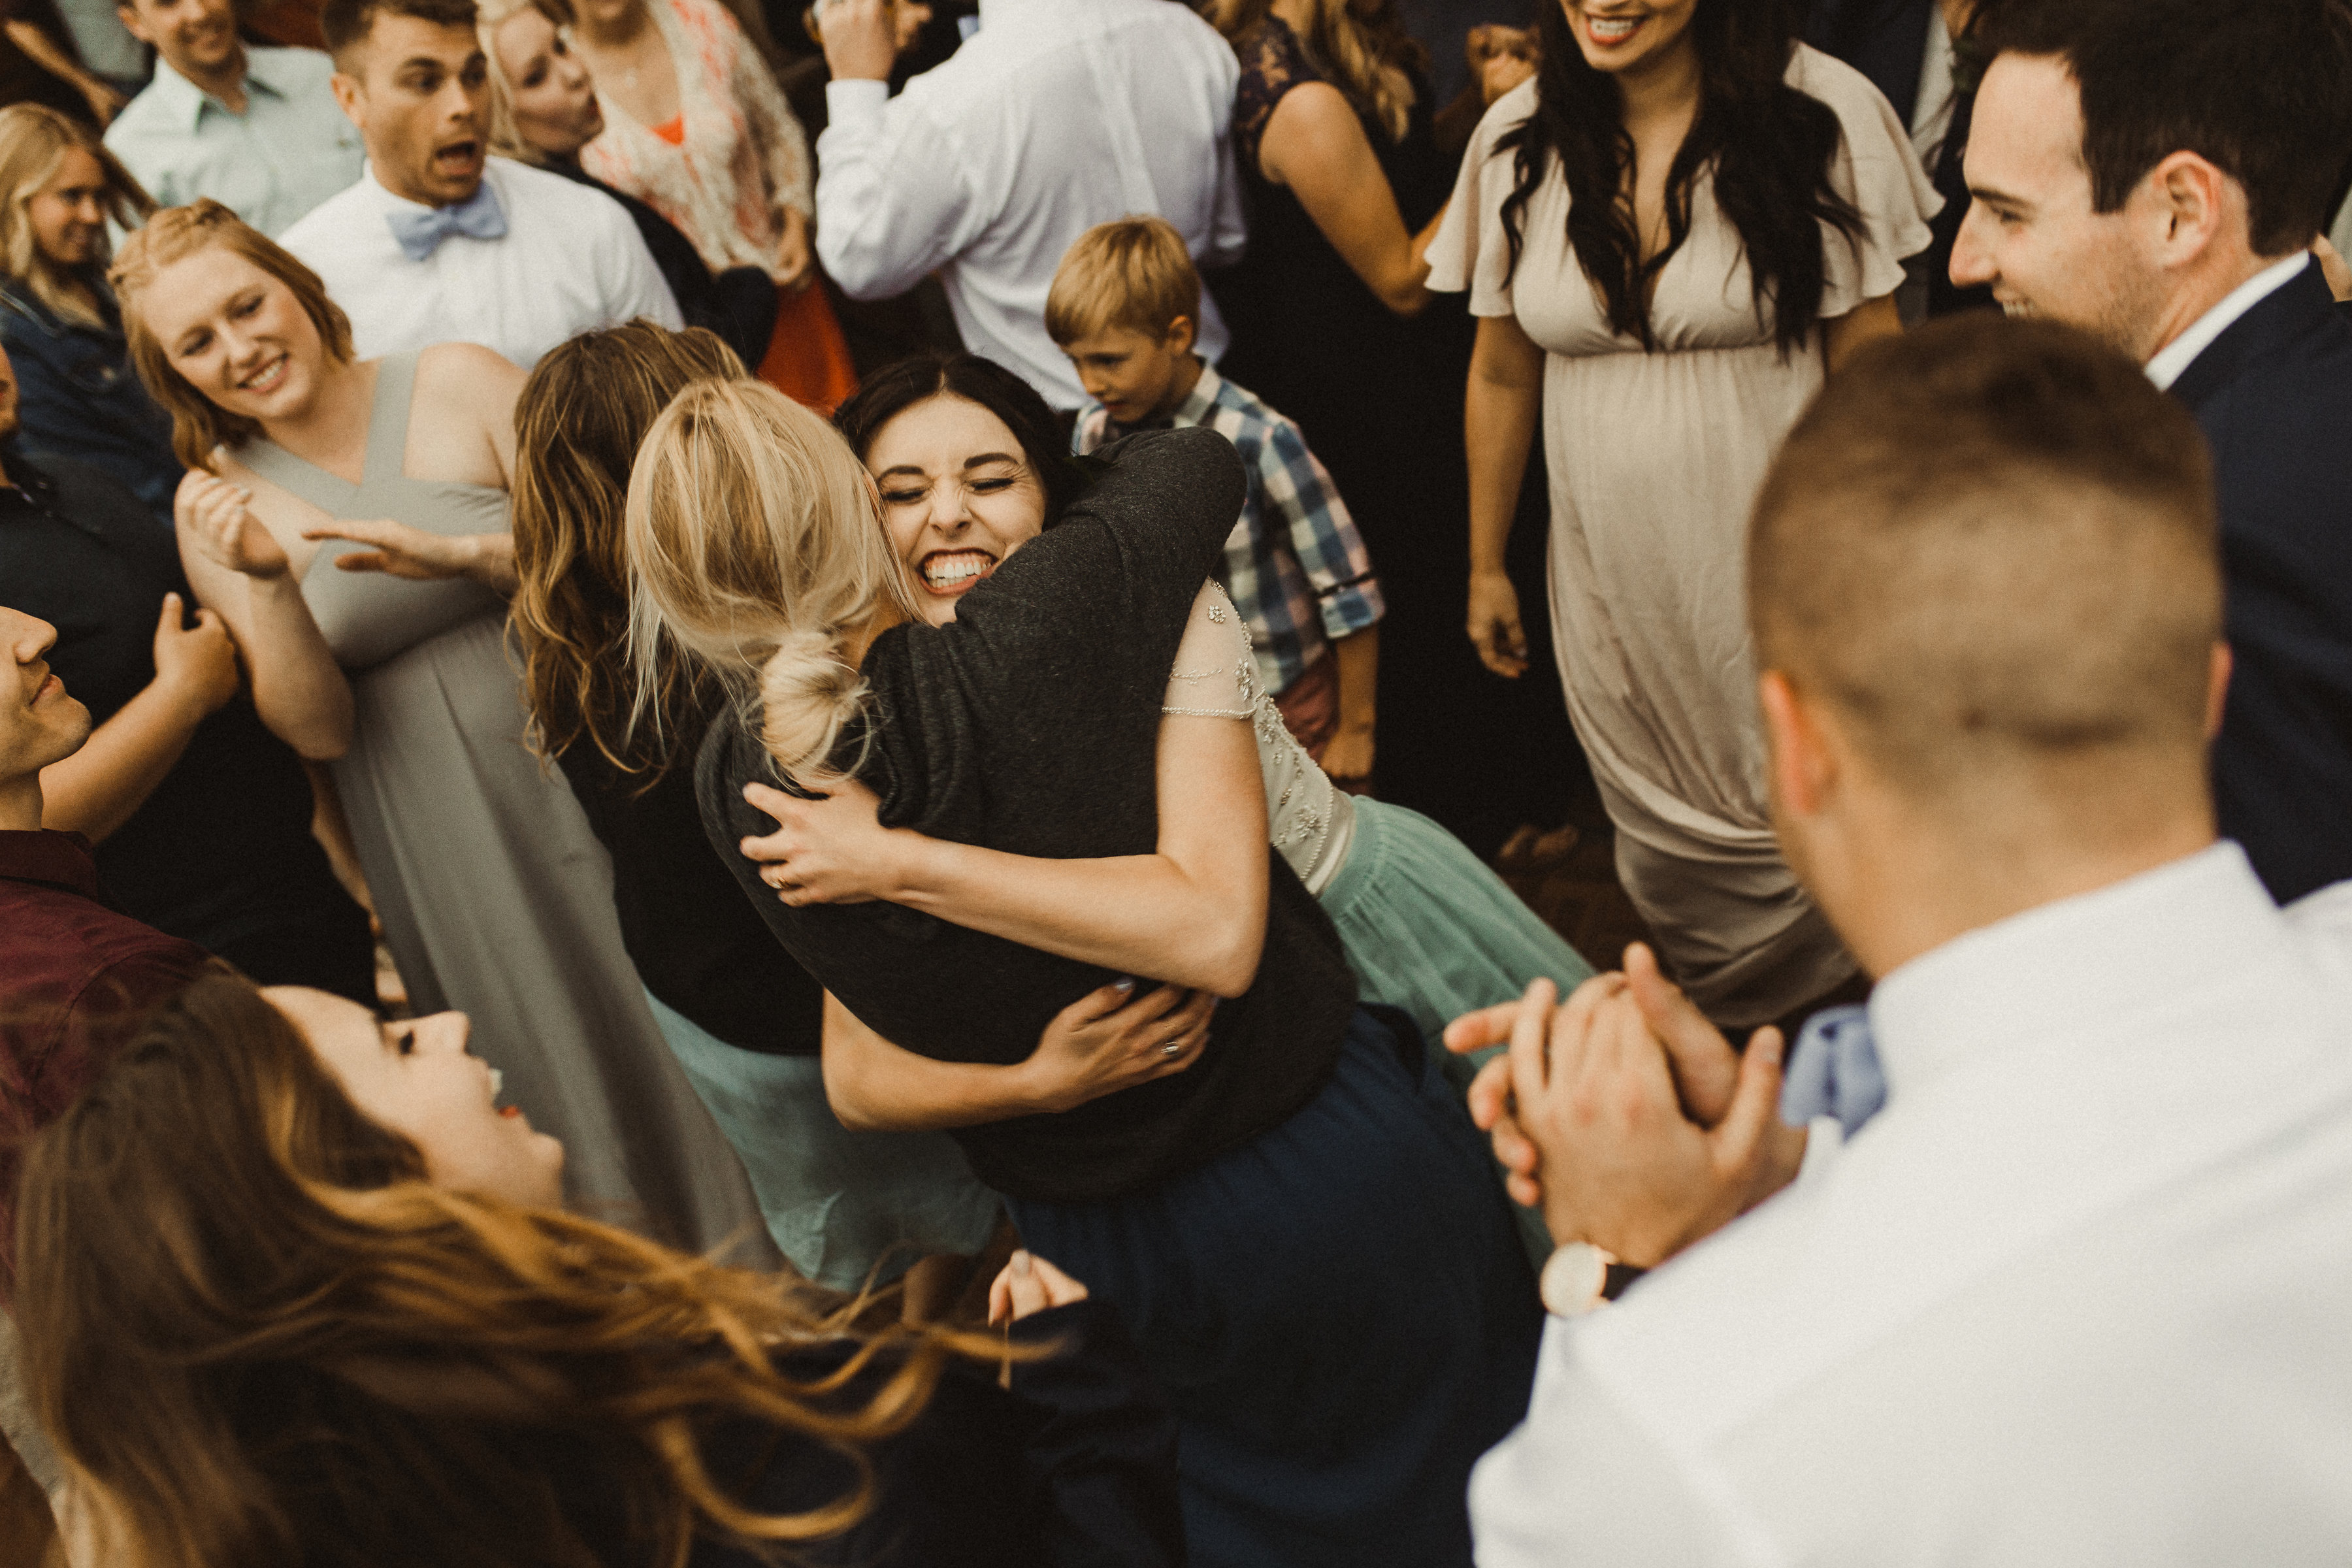 Bride hugs her best friends and guests on her long awaited wedding day